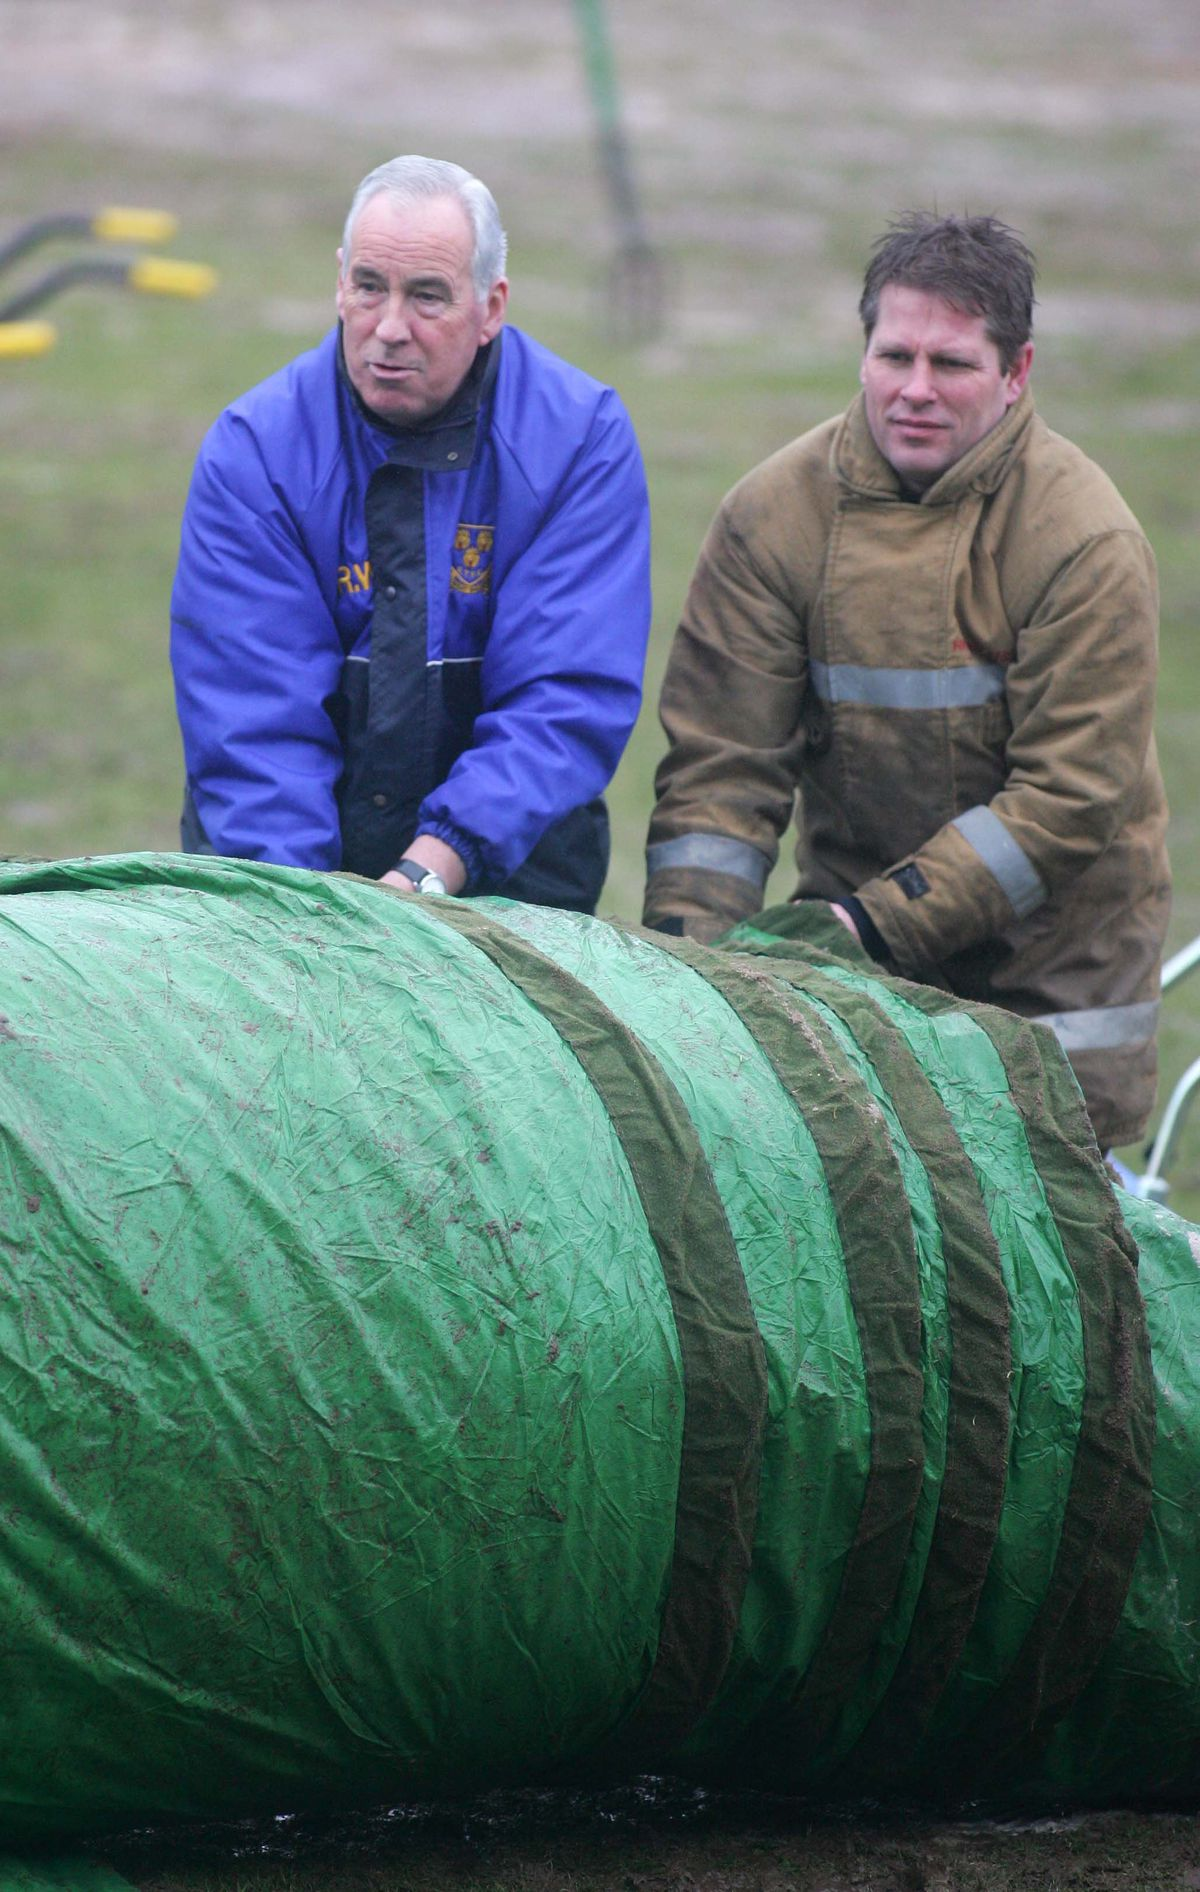 Roland Wycherley helps the fire brigade to roll up the pitch covers